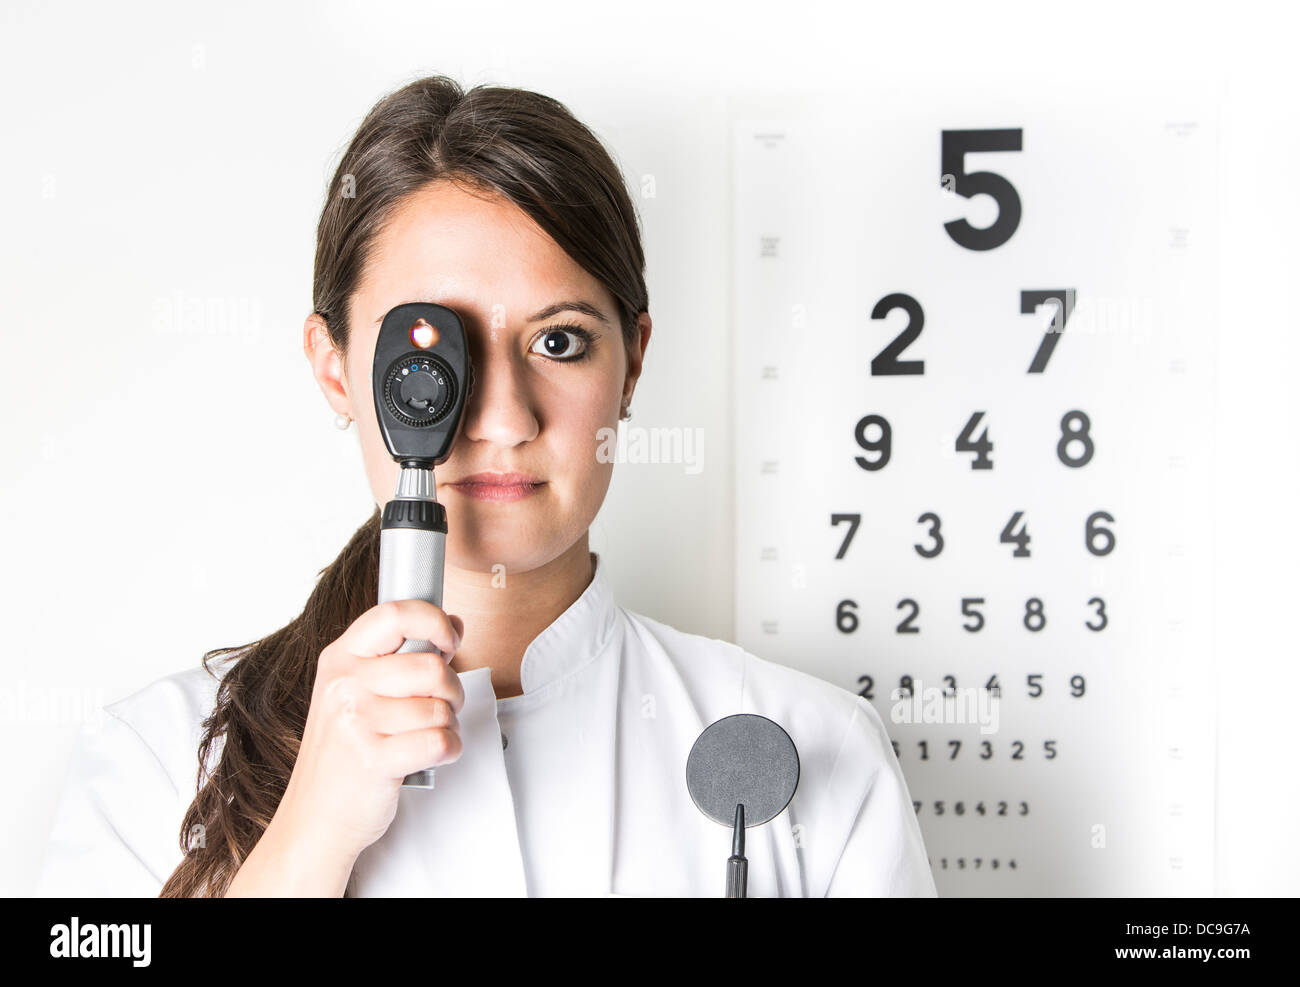 Young eye doctor W25 with ophthalmoscope - Stock Image